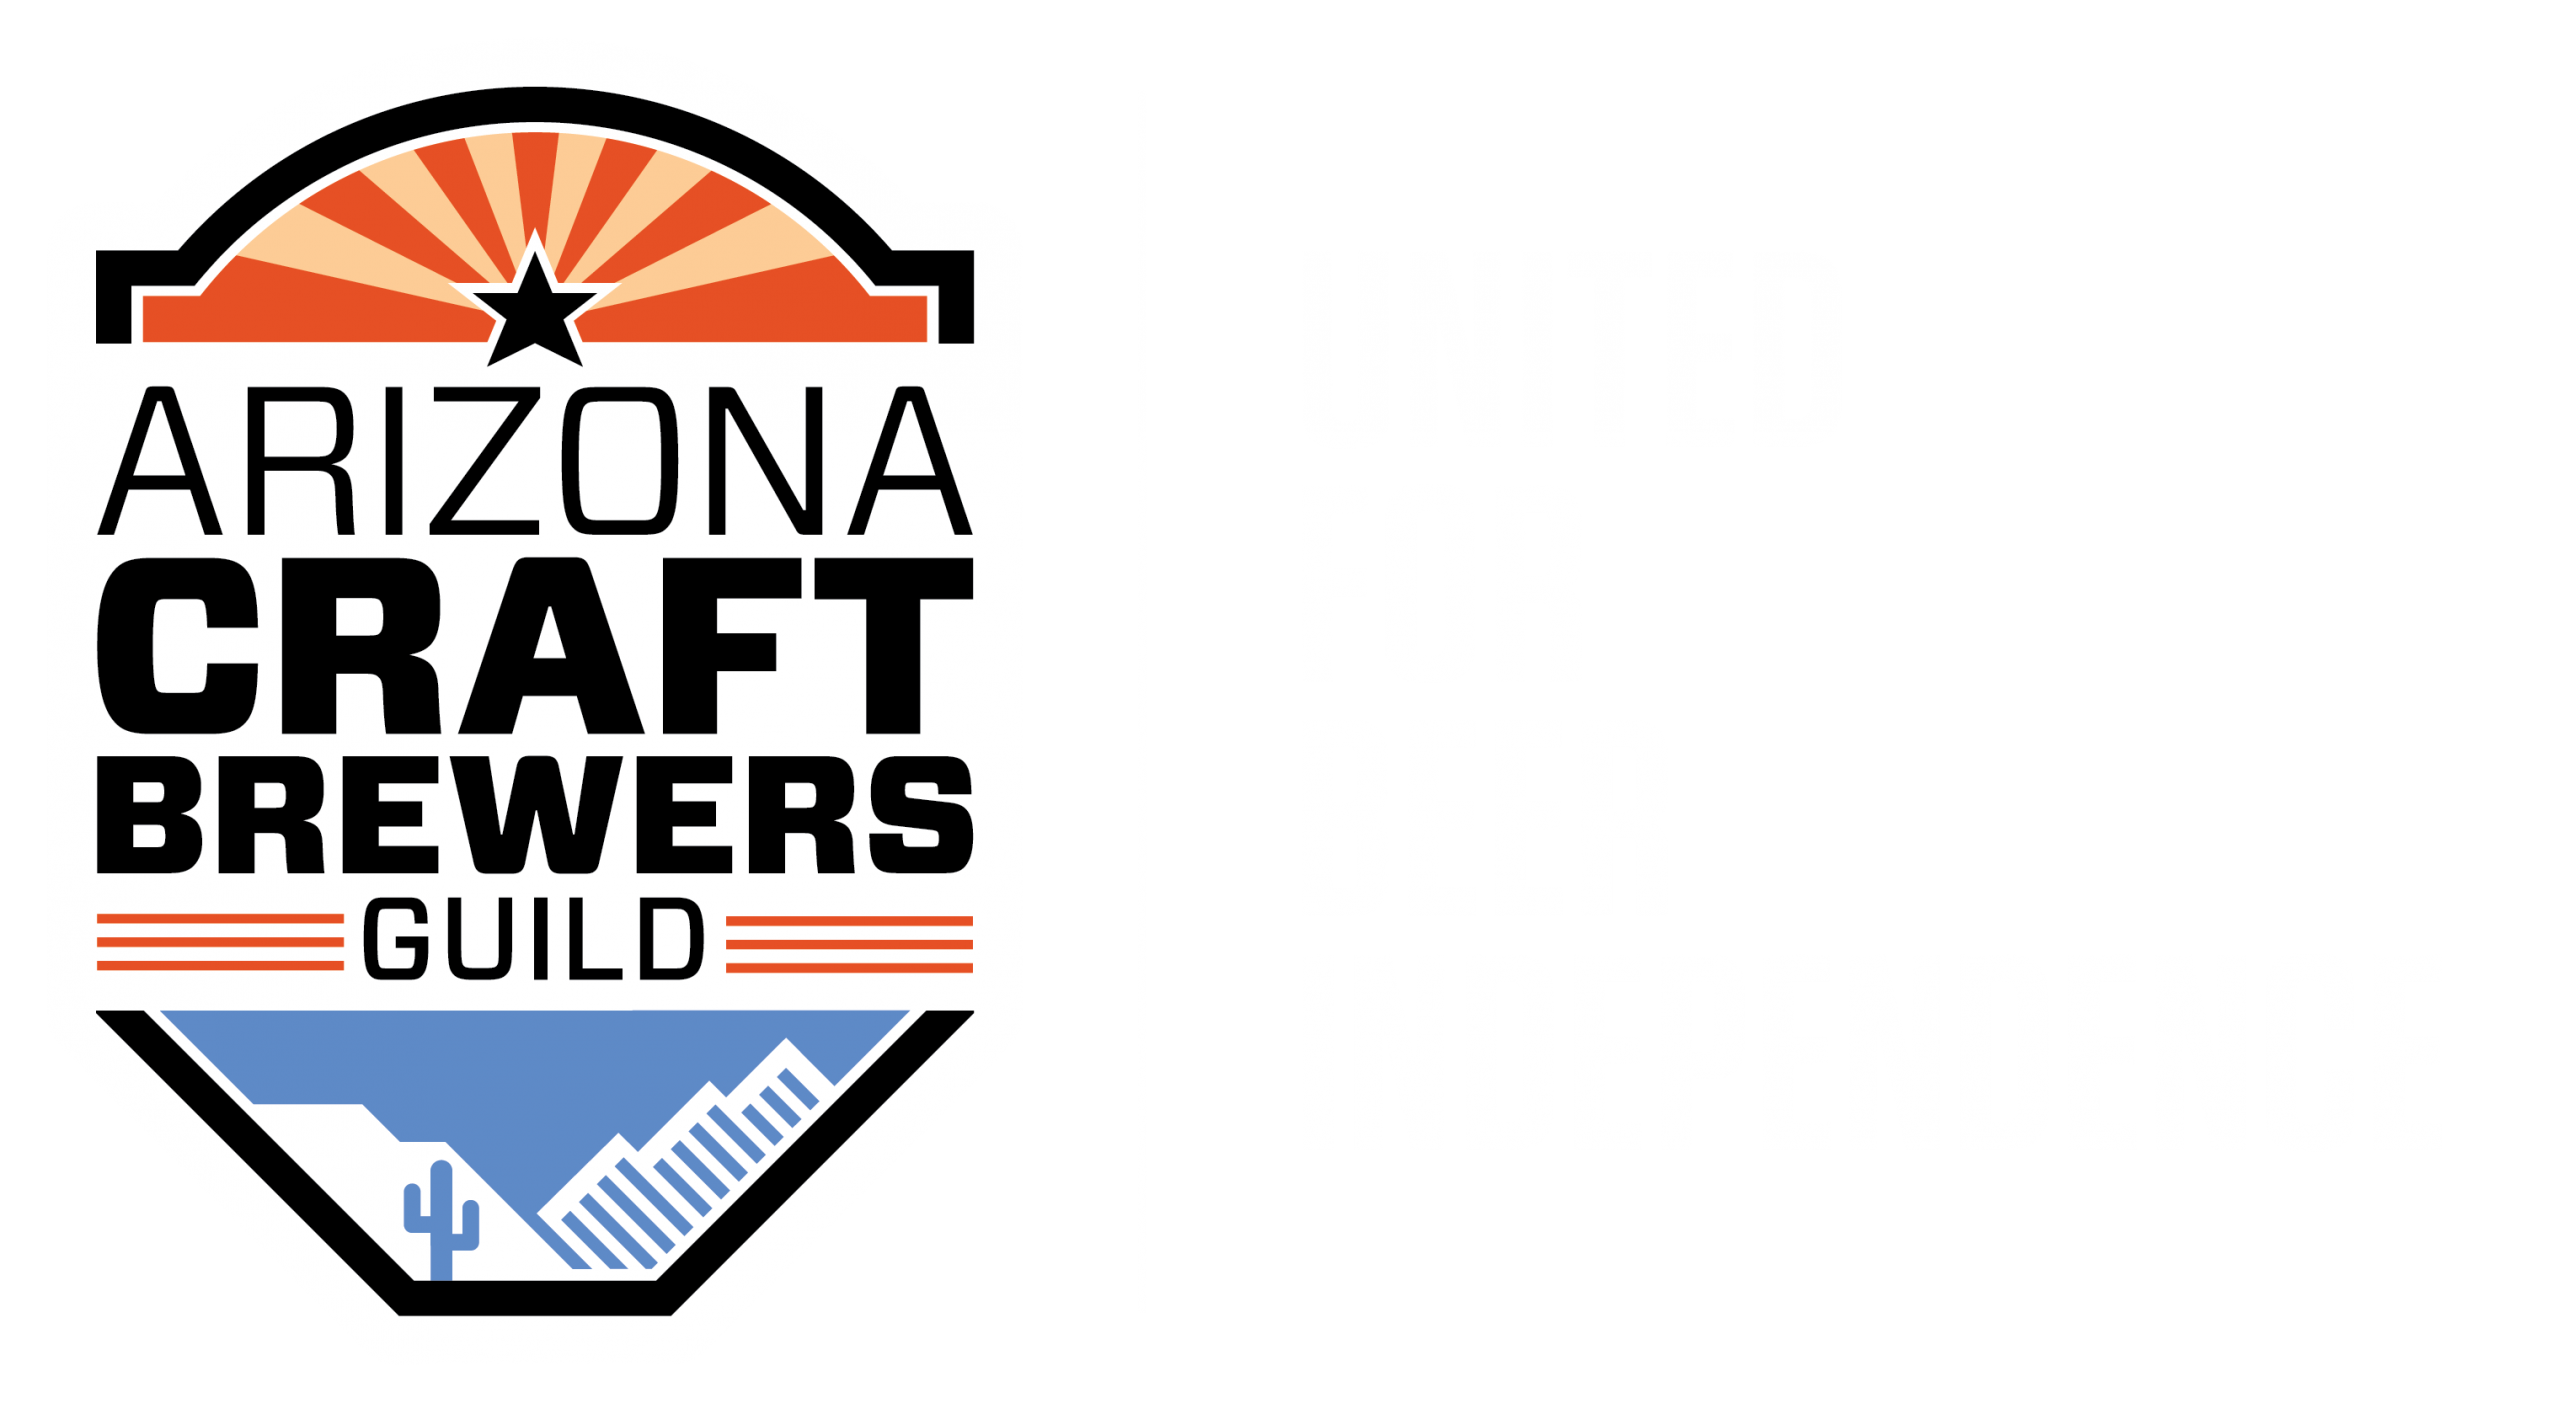 BSG CraftBrewing | Arizona Craft Brewers Guild